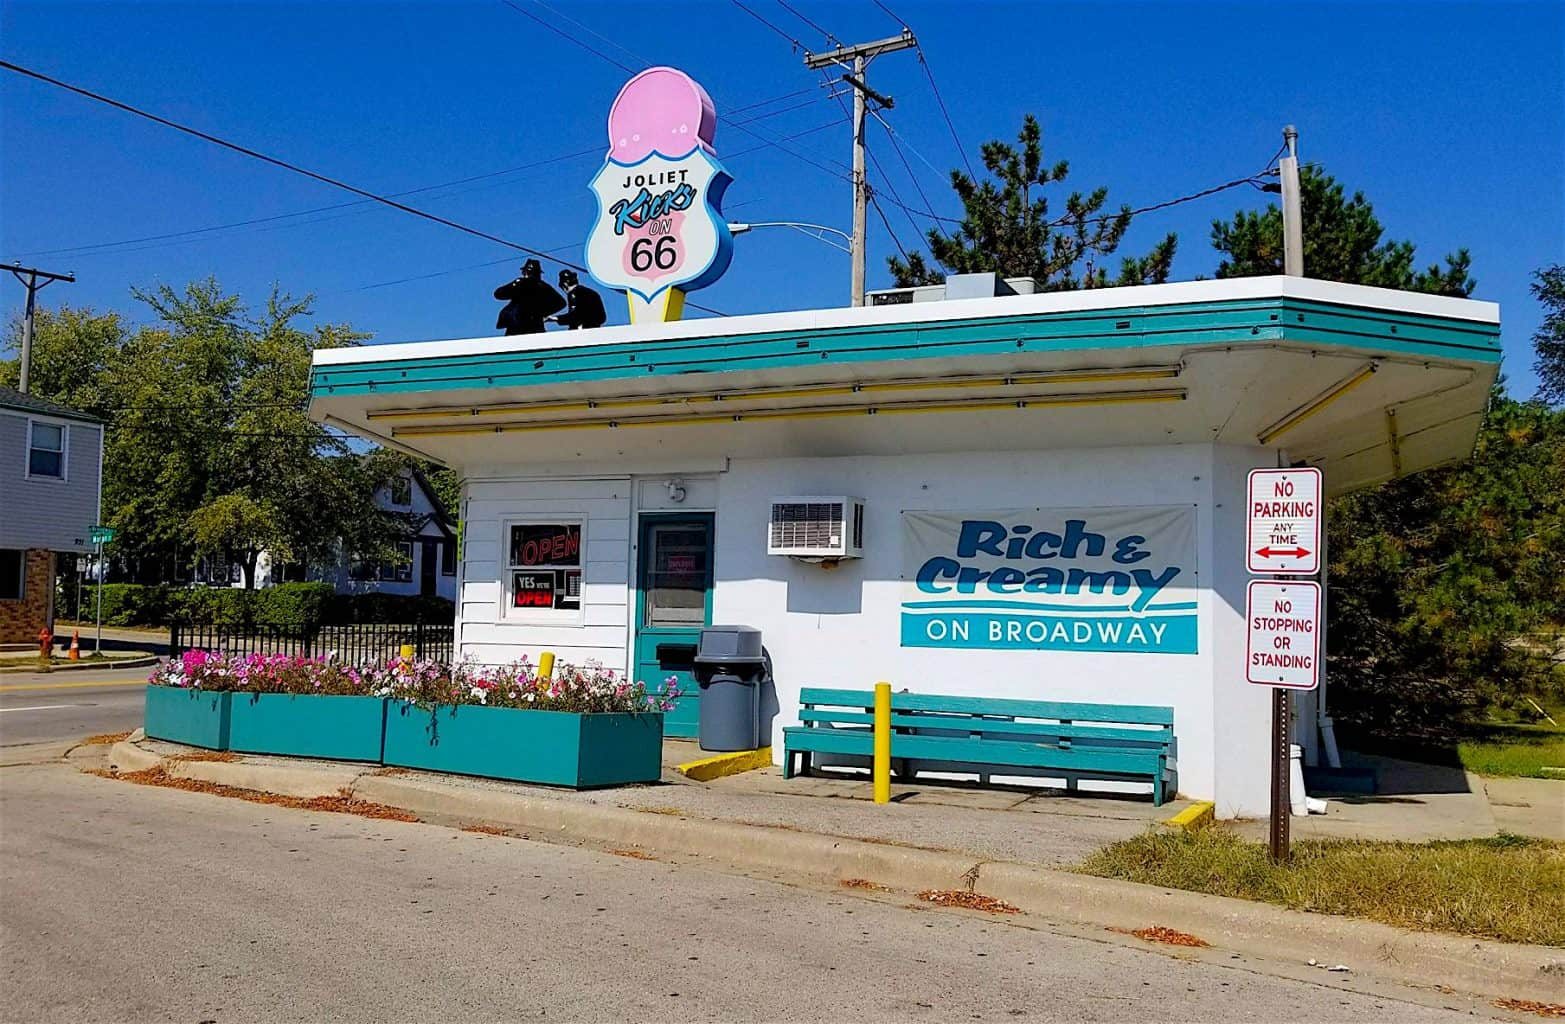 Exploring Things to Do in Joliet, Illinois: Jail, Route 66 & Ice Cream